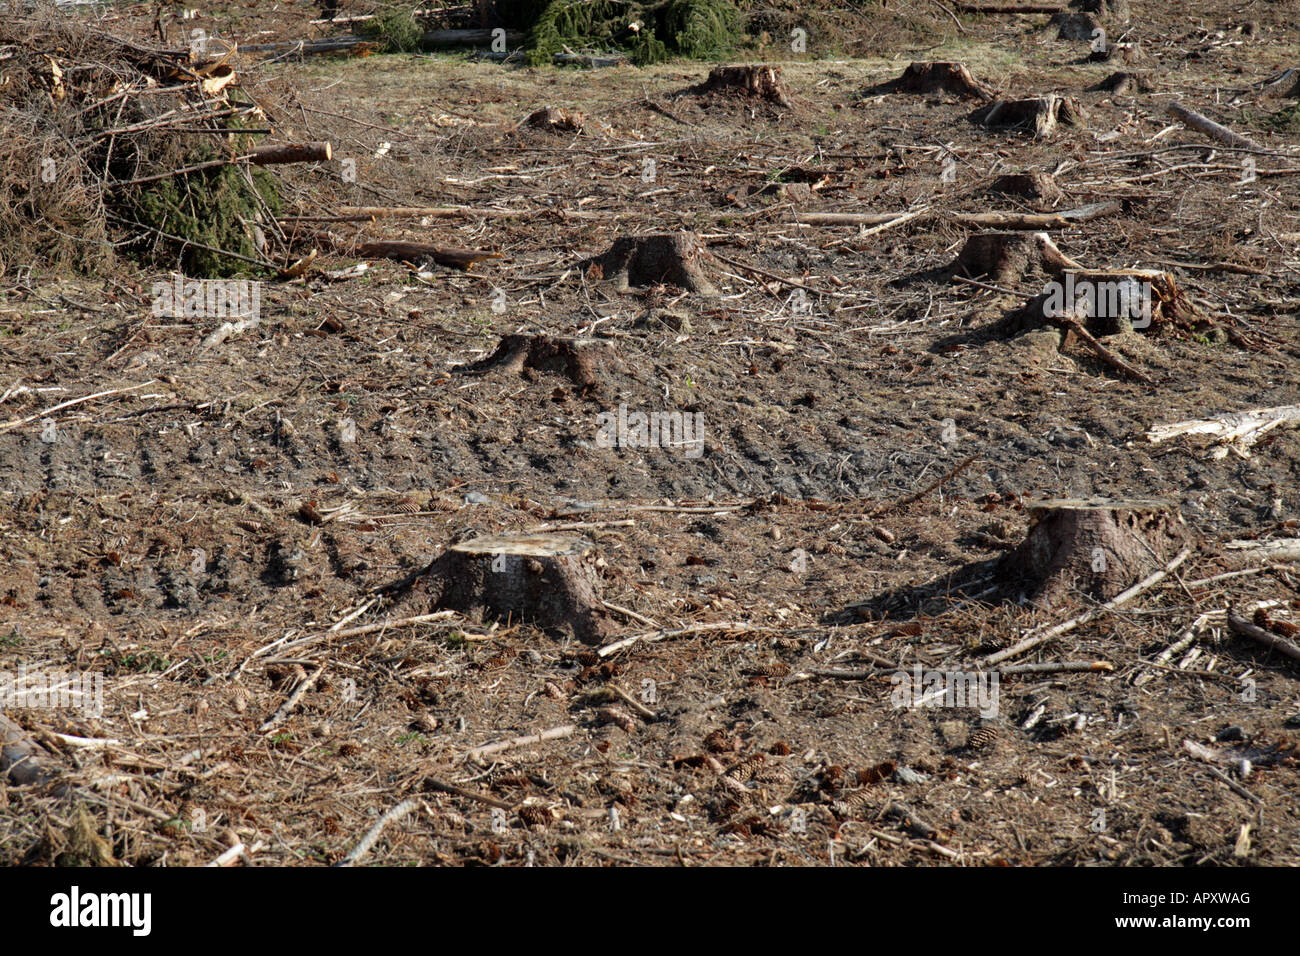 Tree stumps at a clear-cut pine tree forest in Sweden. - Stock Image